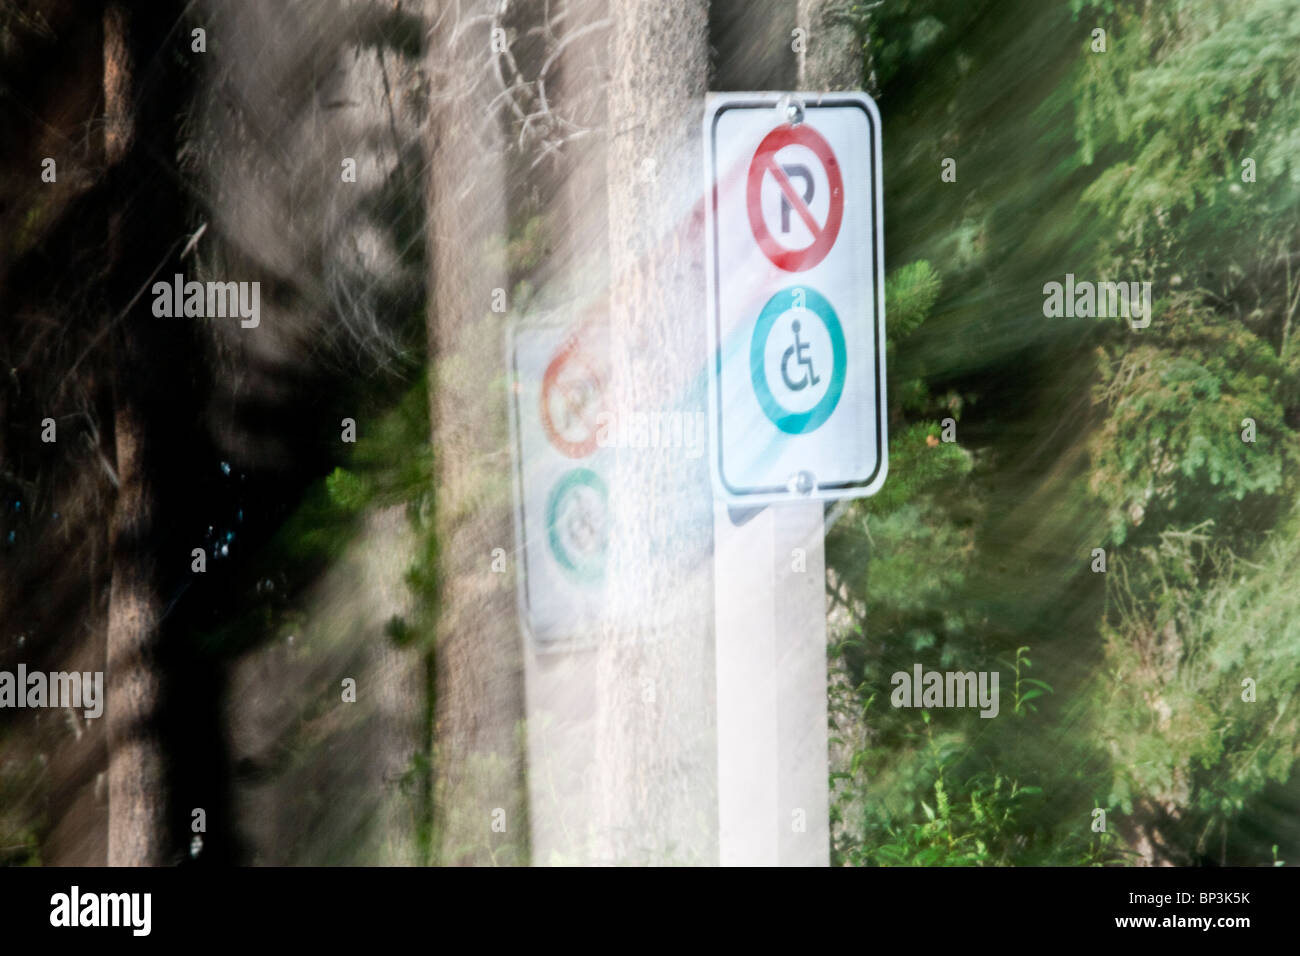 no parking, handicap sign, special photo effects - Stock Image